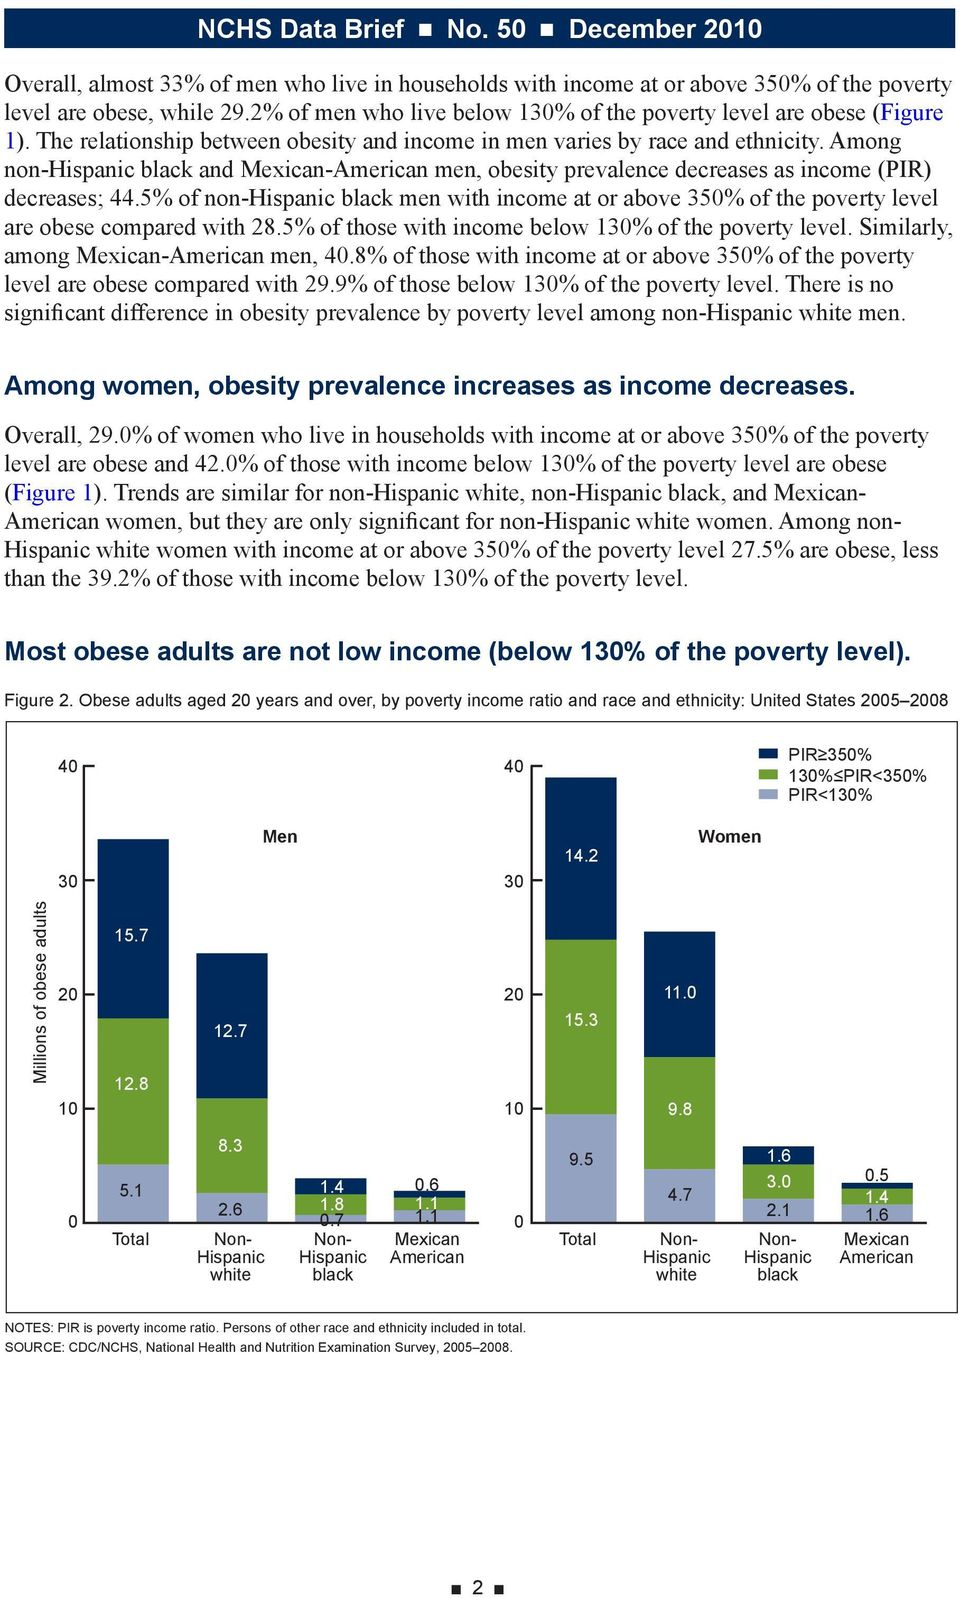 5% of non-hispanic black men with income at or above 350% of the poverty level are obese compared with 28.5% of those with income below 130% of the poverty level.